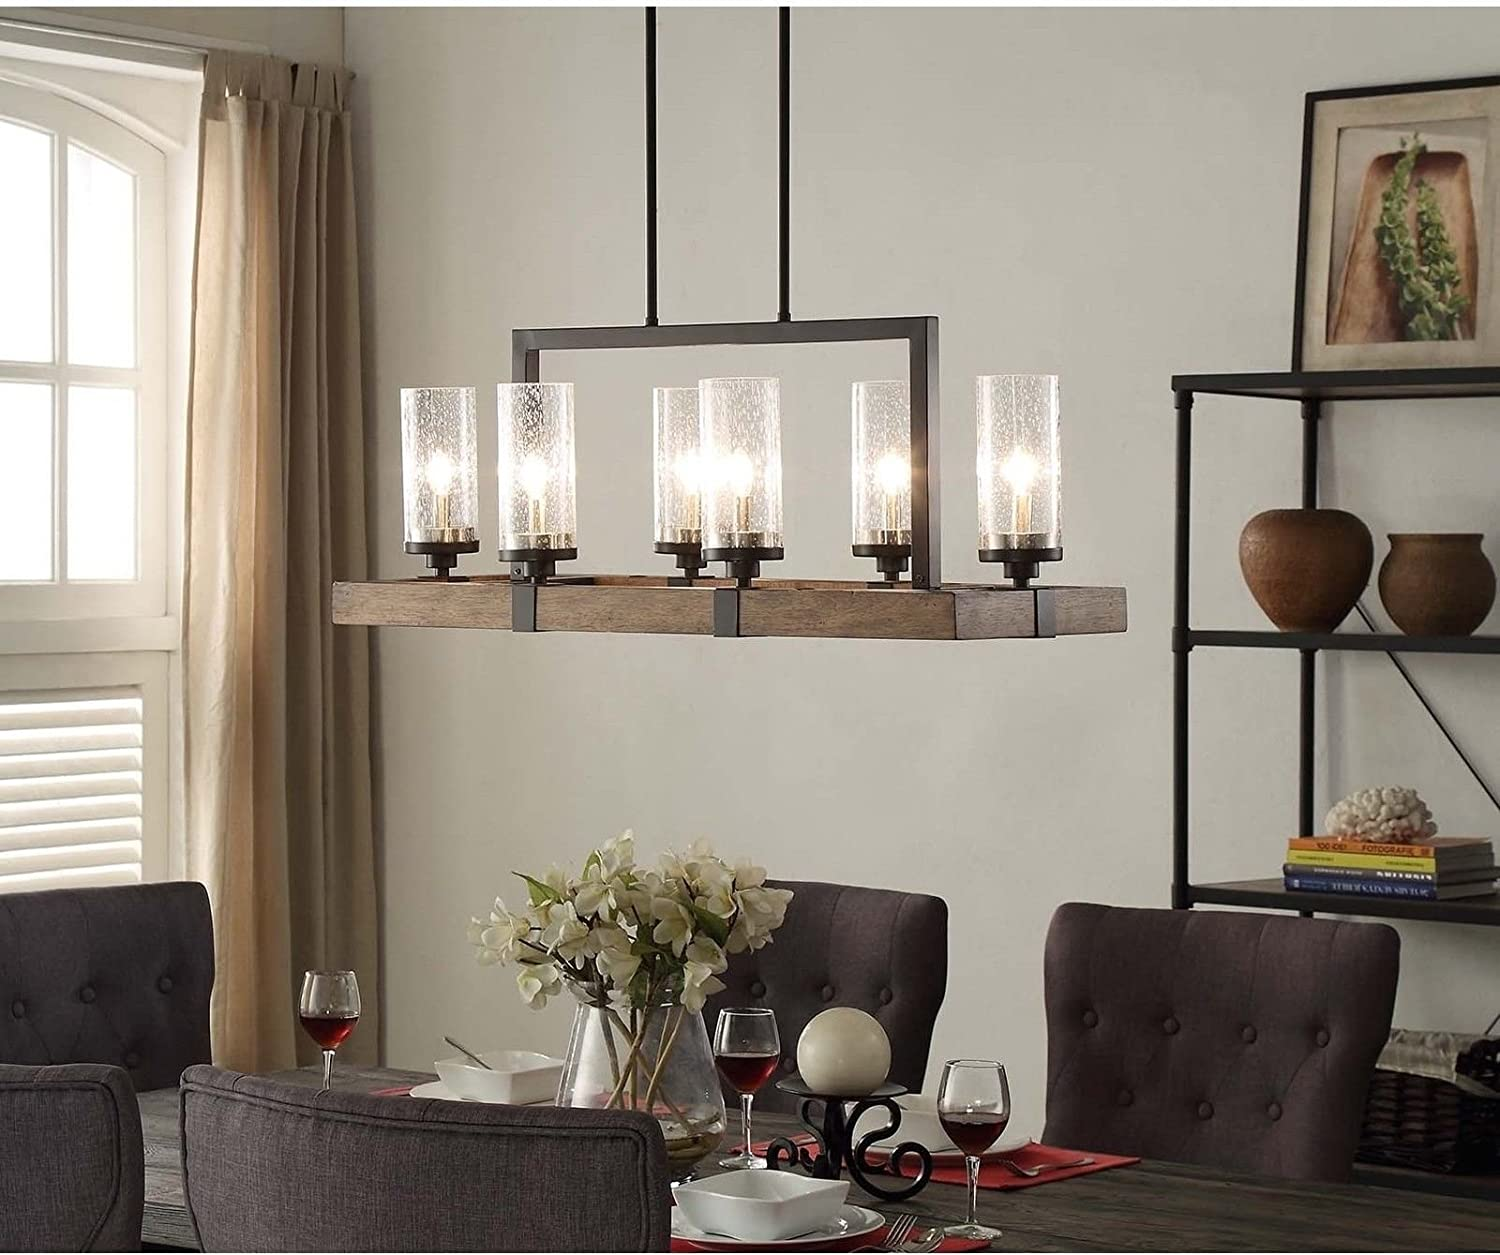 Vineyard Rustic Style 6-Light Glass Fixture Metal And Wood Ceiling Chandelier